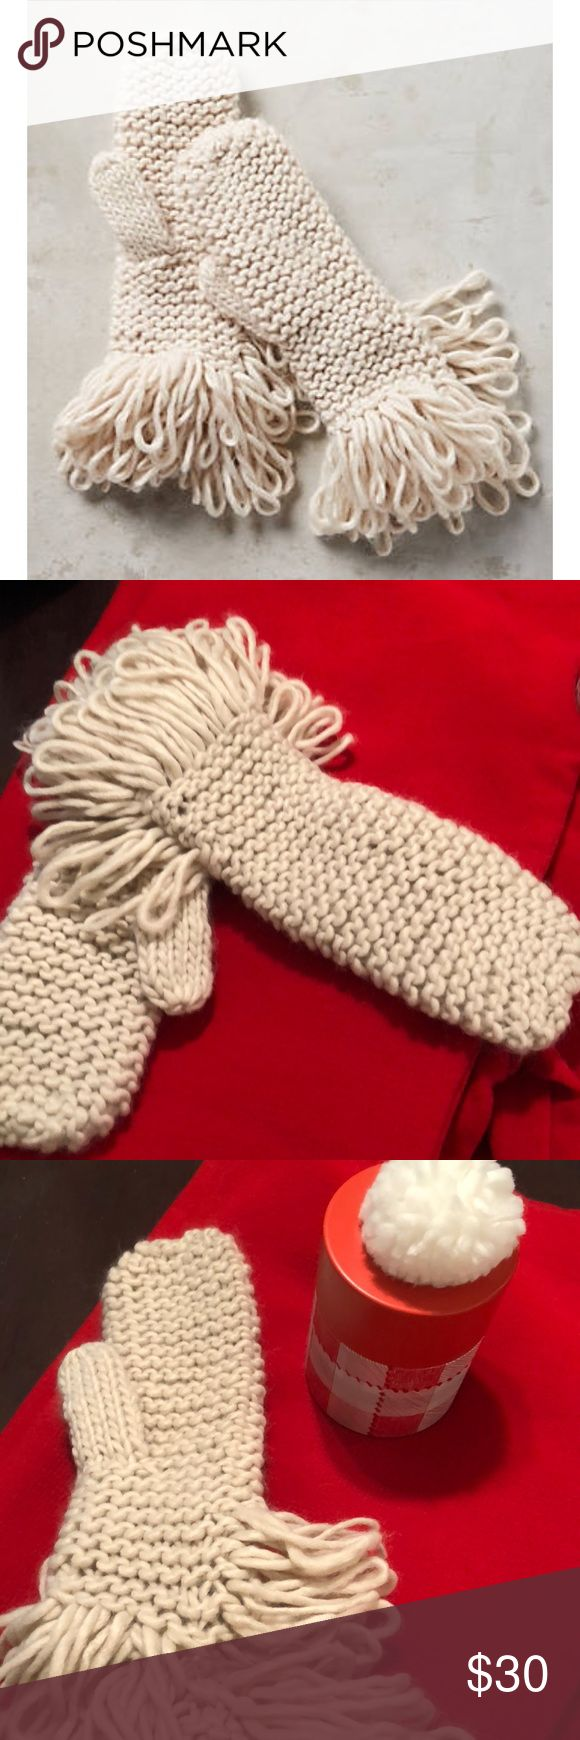 Anthropologie loop mittens 🎅🏻☃️❄️ So fun!  🤶🏻🎅🏻 great gift item!  Knitted looped cream mittens.  Still swift tagged.  I️ loved them so much I️ bought three color ways!  Need to scale down my winter accessories. 🙄 Anthropologie Accessories Gloves & Mittens